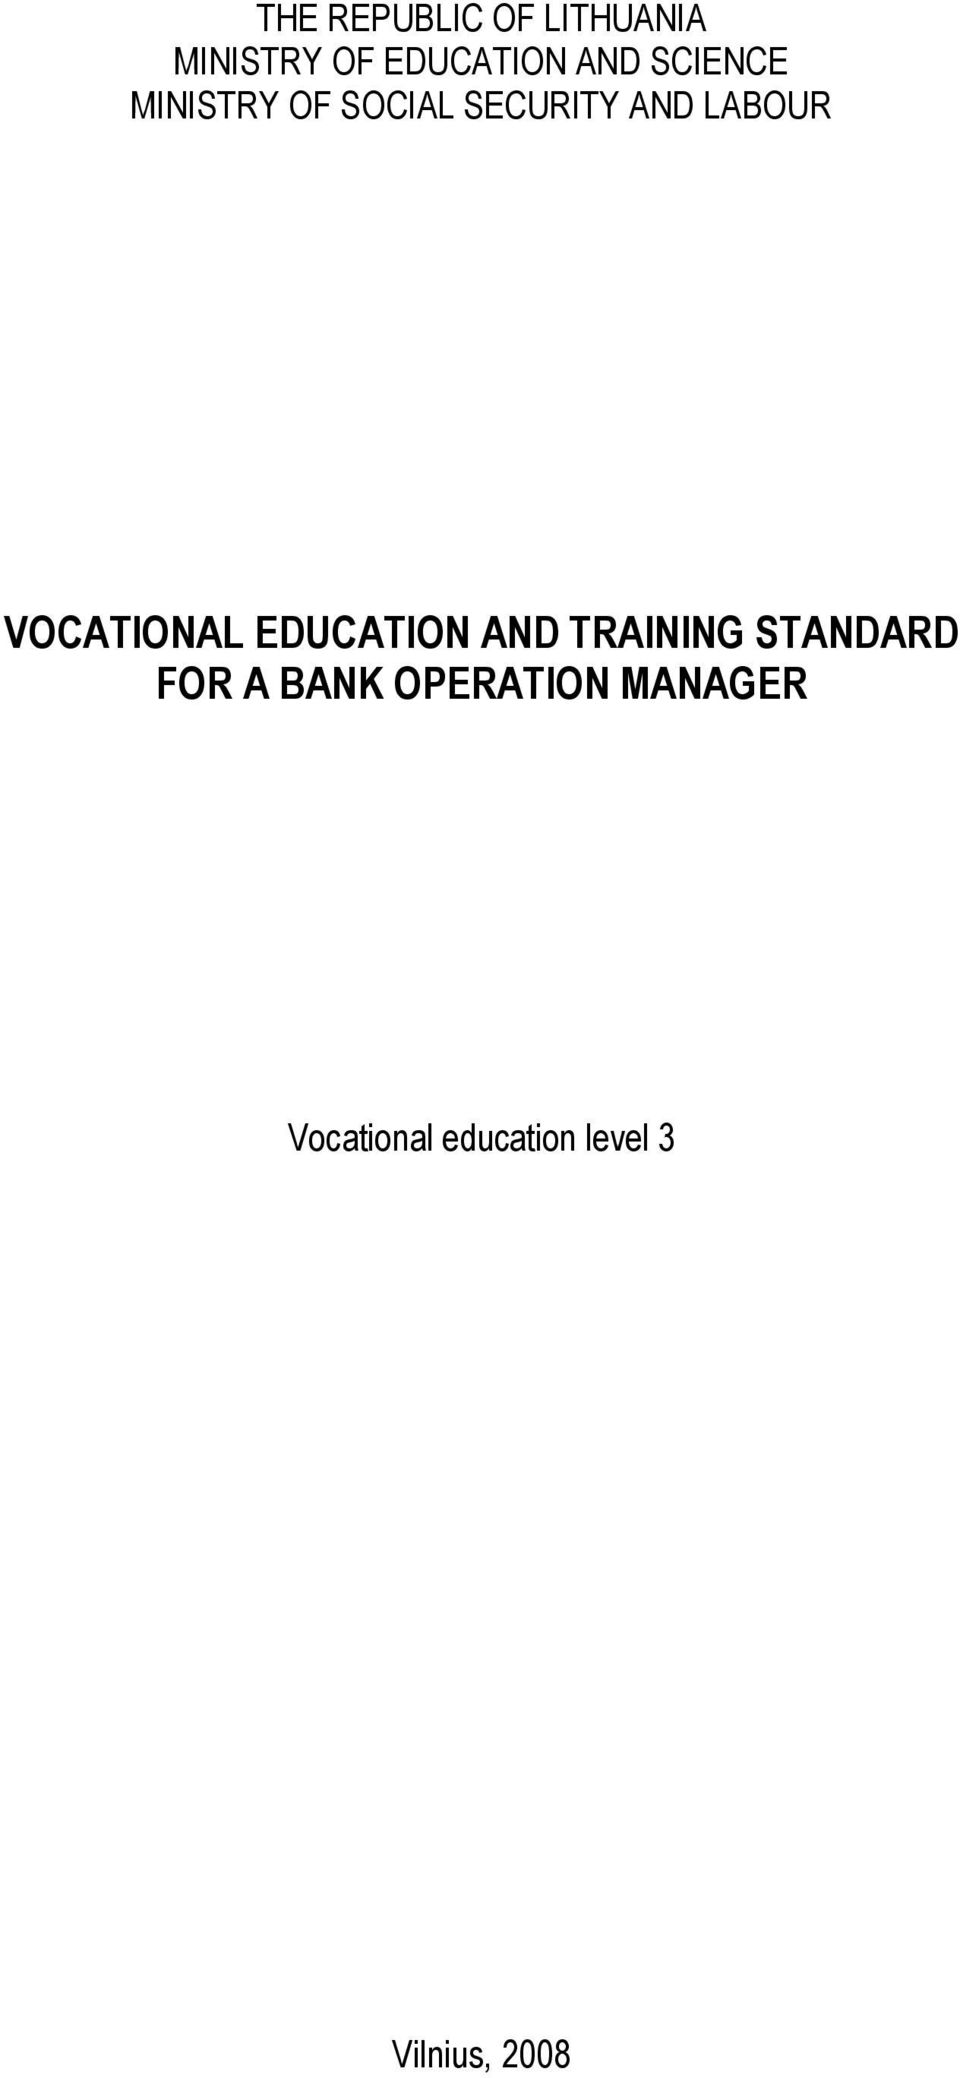 VOCATIONAL EDUCATION AND TRAINING STANDARD FOR A BANK